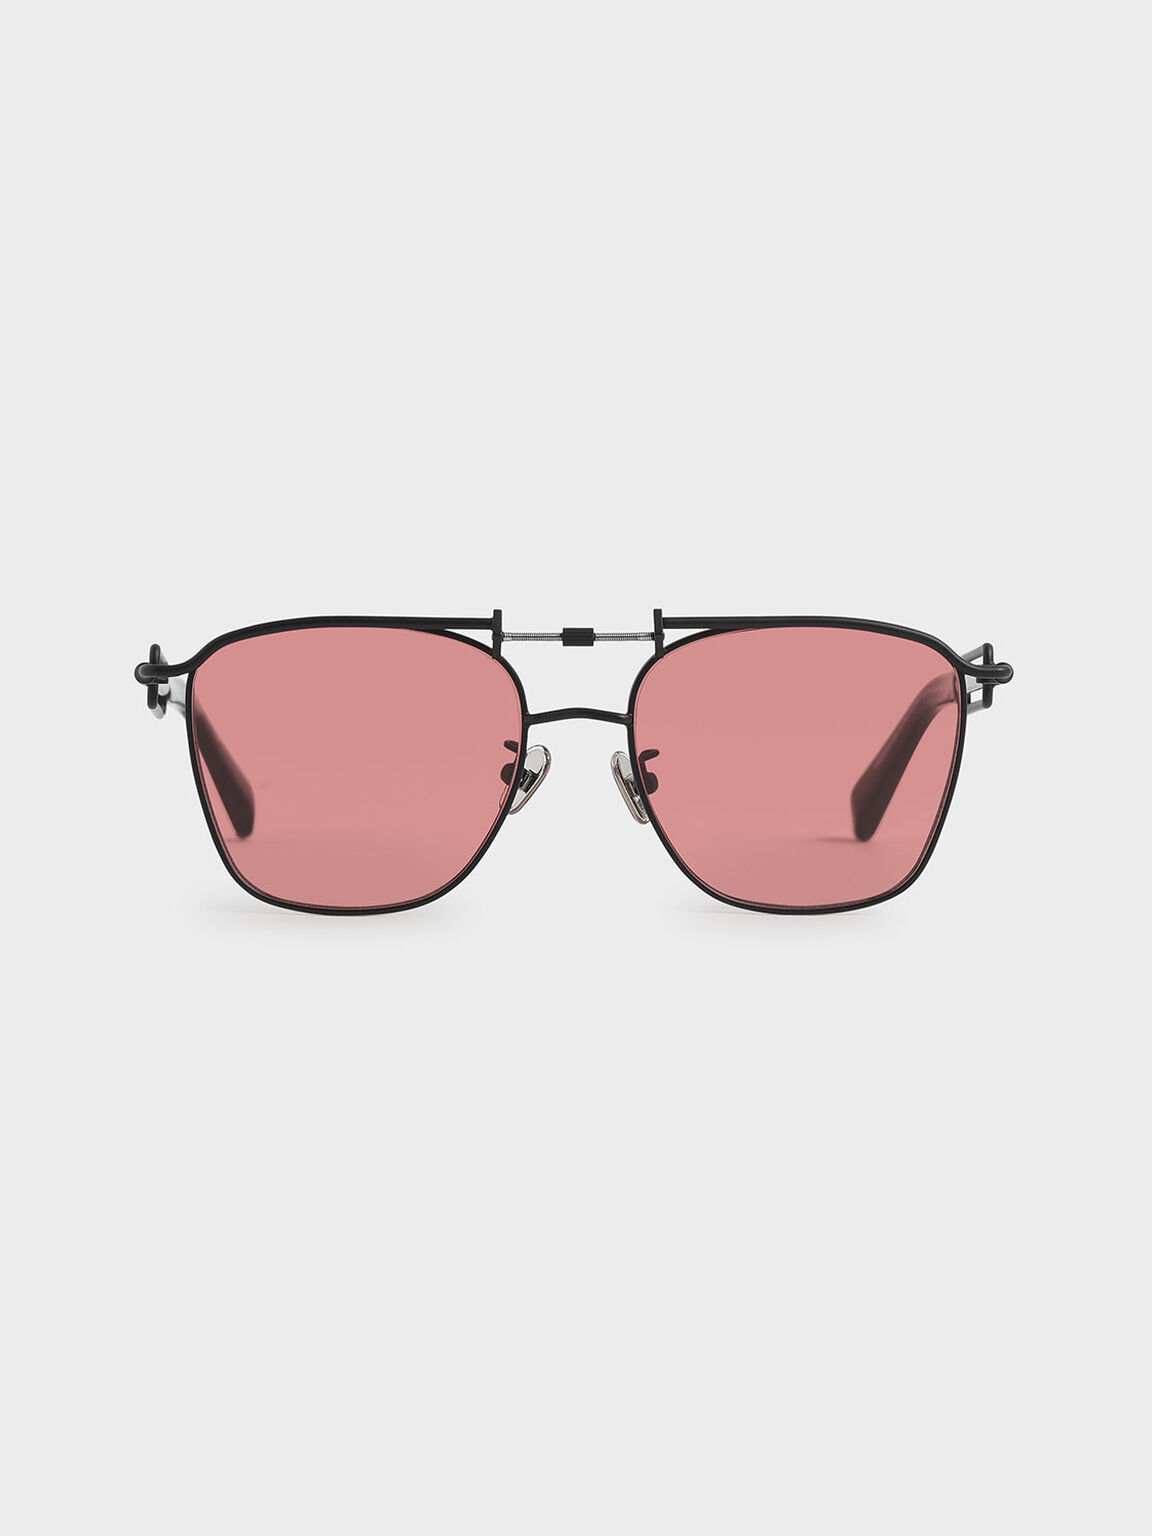 Square Double Bridge Sunglasses, Red, hi-res